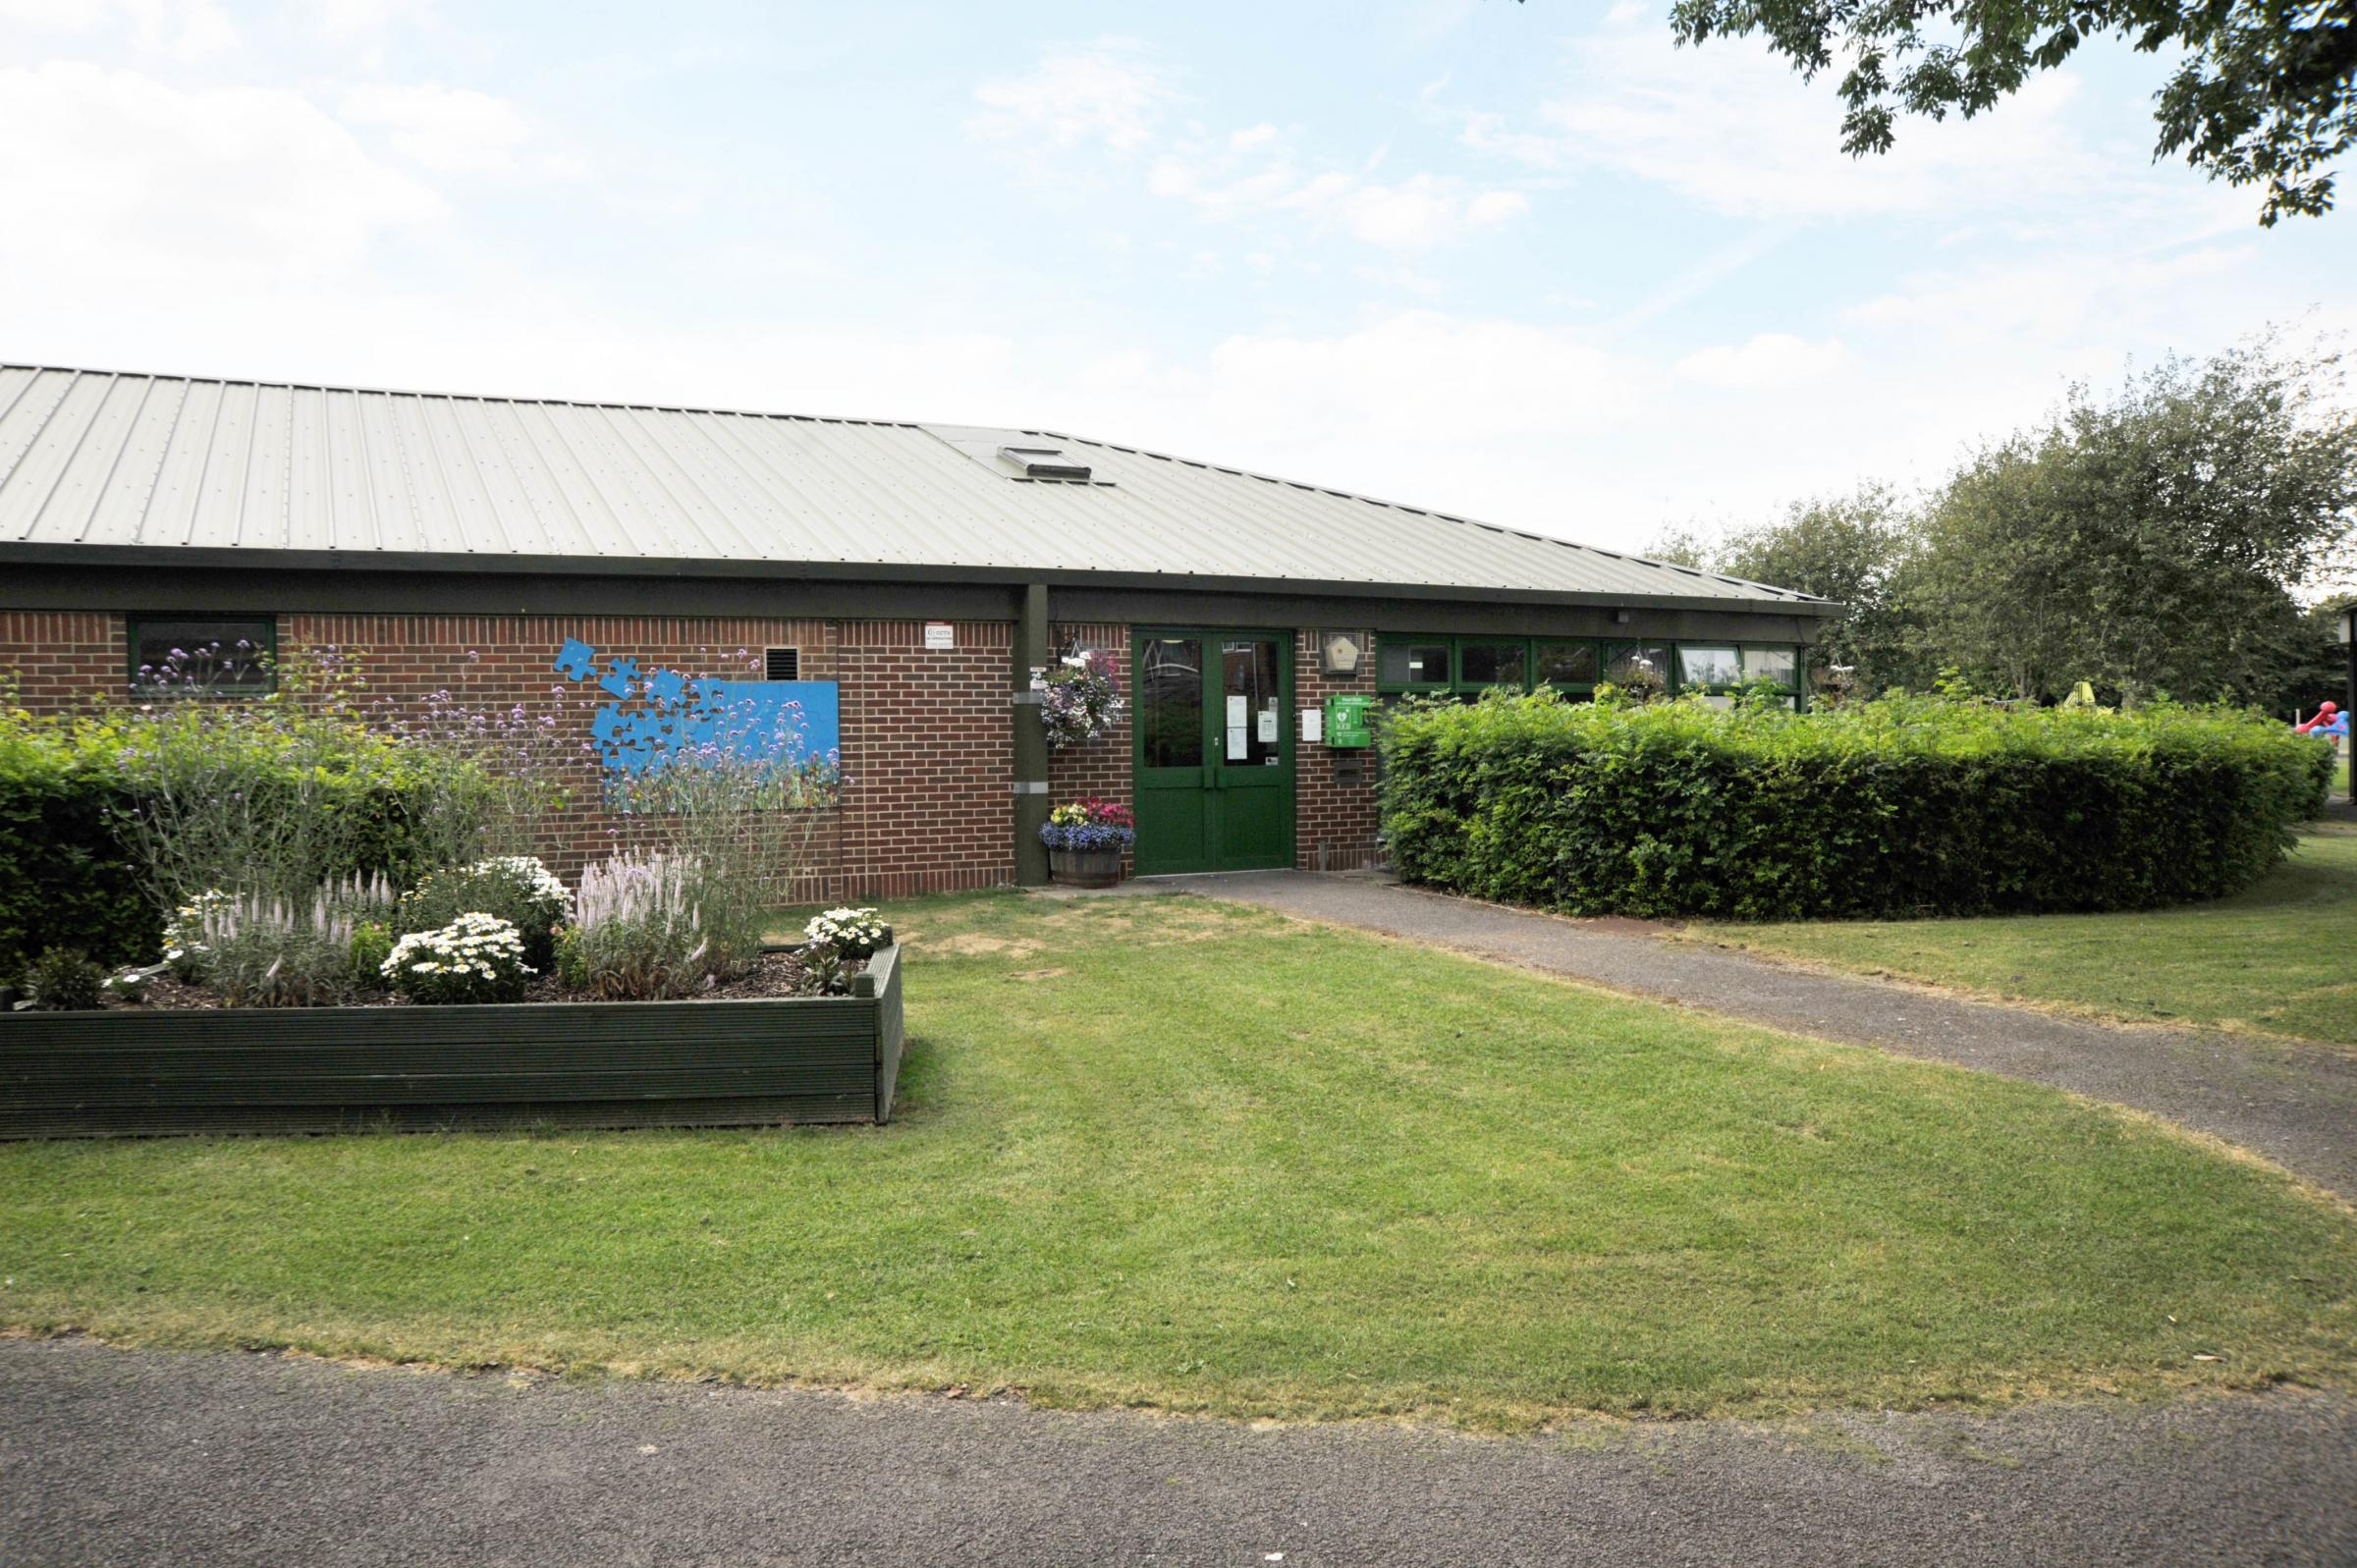 Security stepped up after yobs shout abuse at Stratton council staff